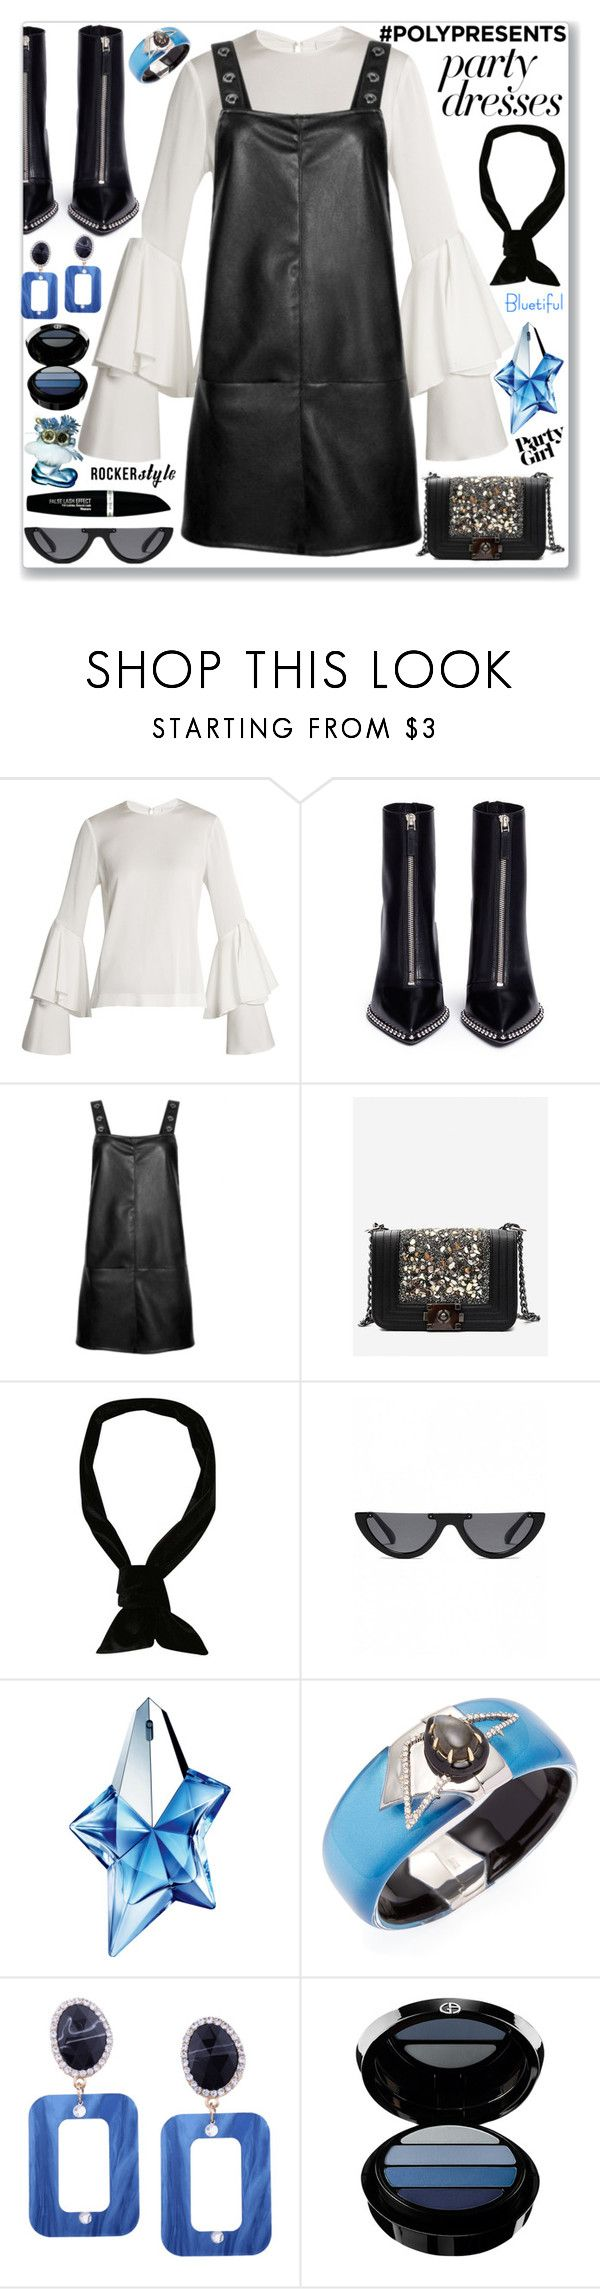 """#PolyPresents: Party Leather Dresses"" by jecakns ❤ liked on Polyvore featuring Galvan, Alexander Wang, Thierry Mugler, Alexis Bittar, Armani Beauty and Max Factor"